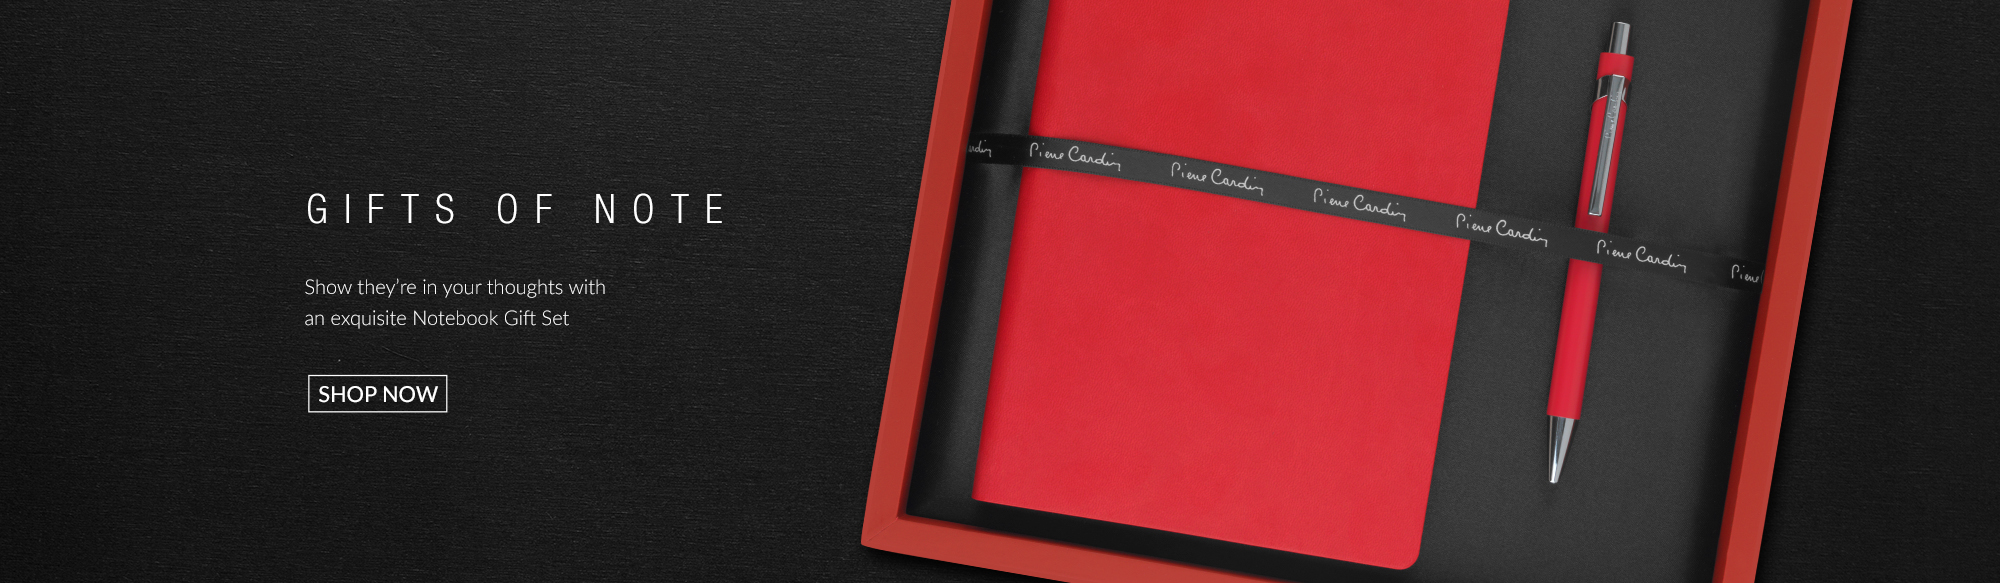 Designer designer-notebooks from Pierre Cardin